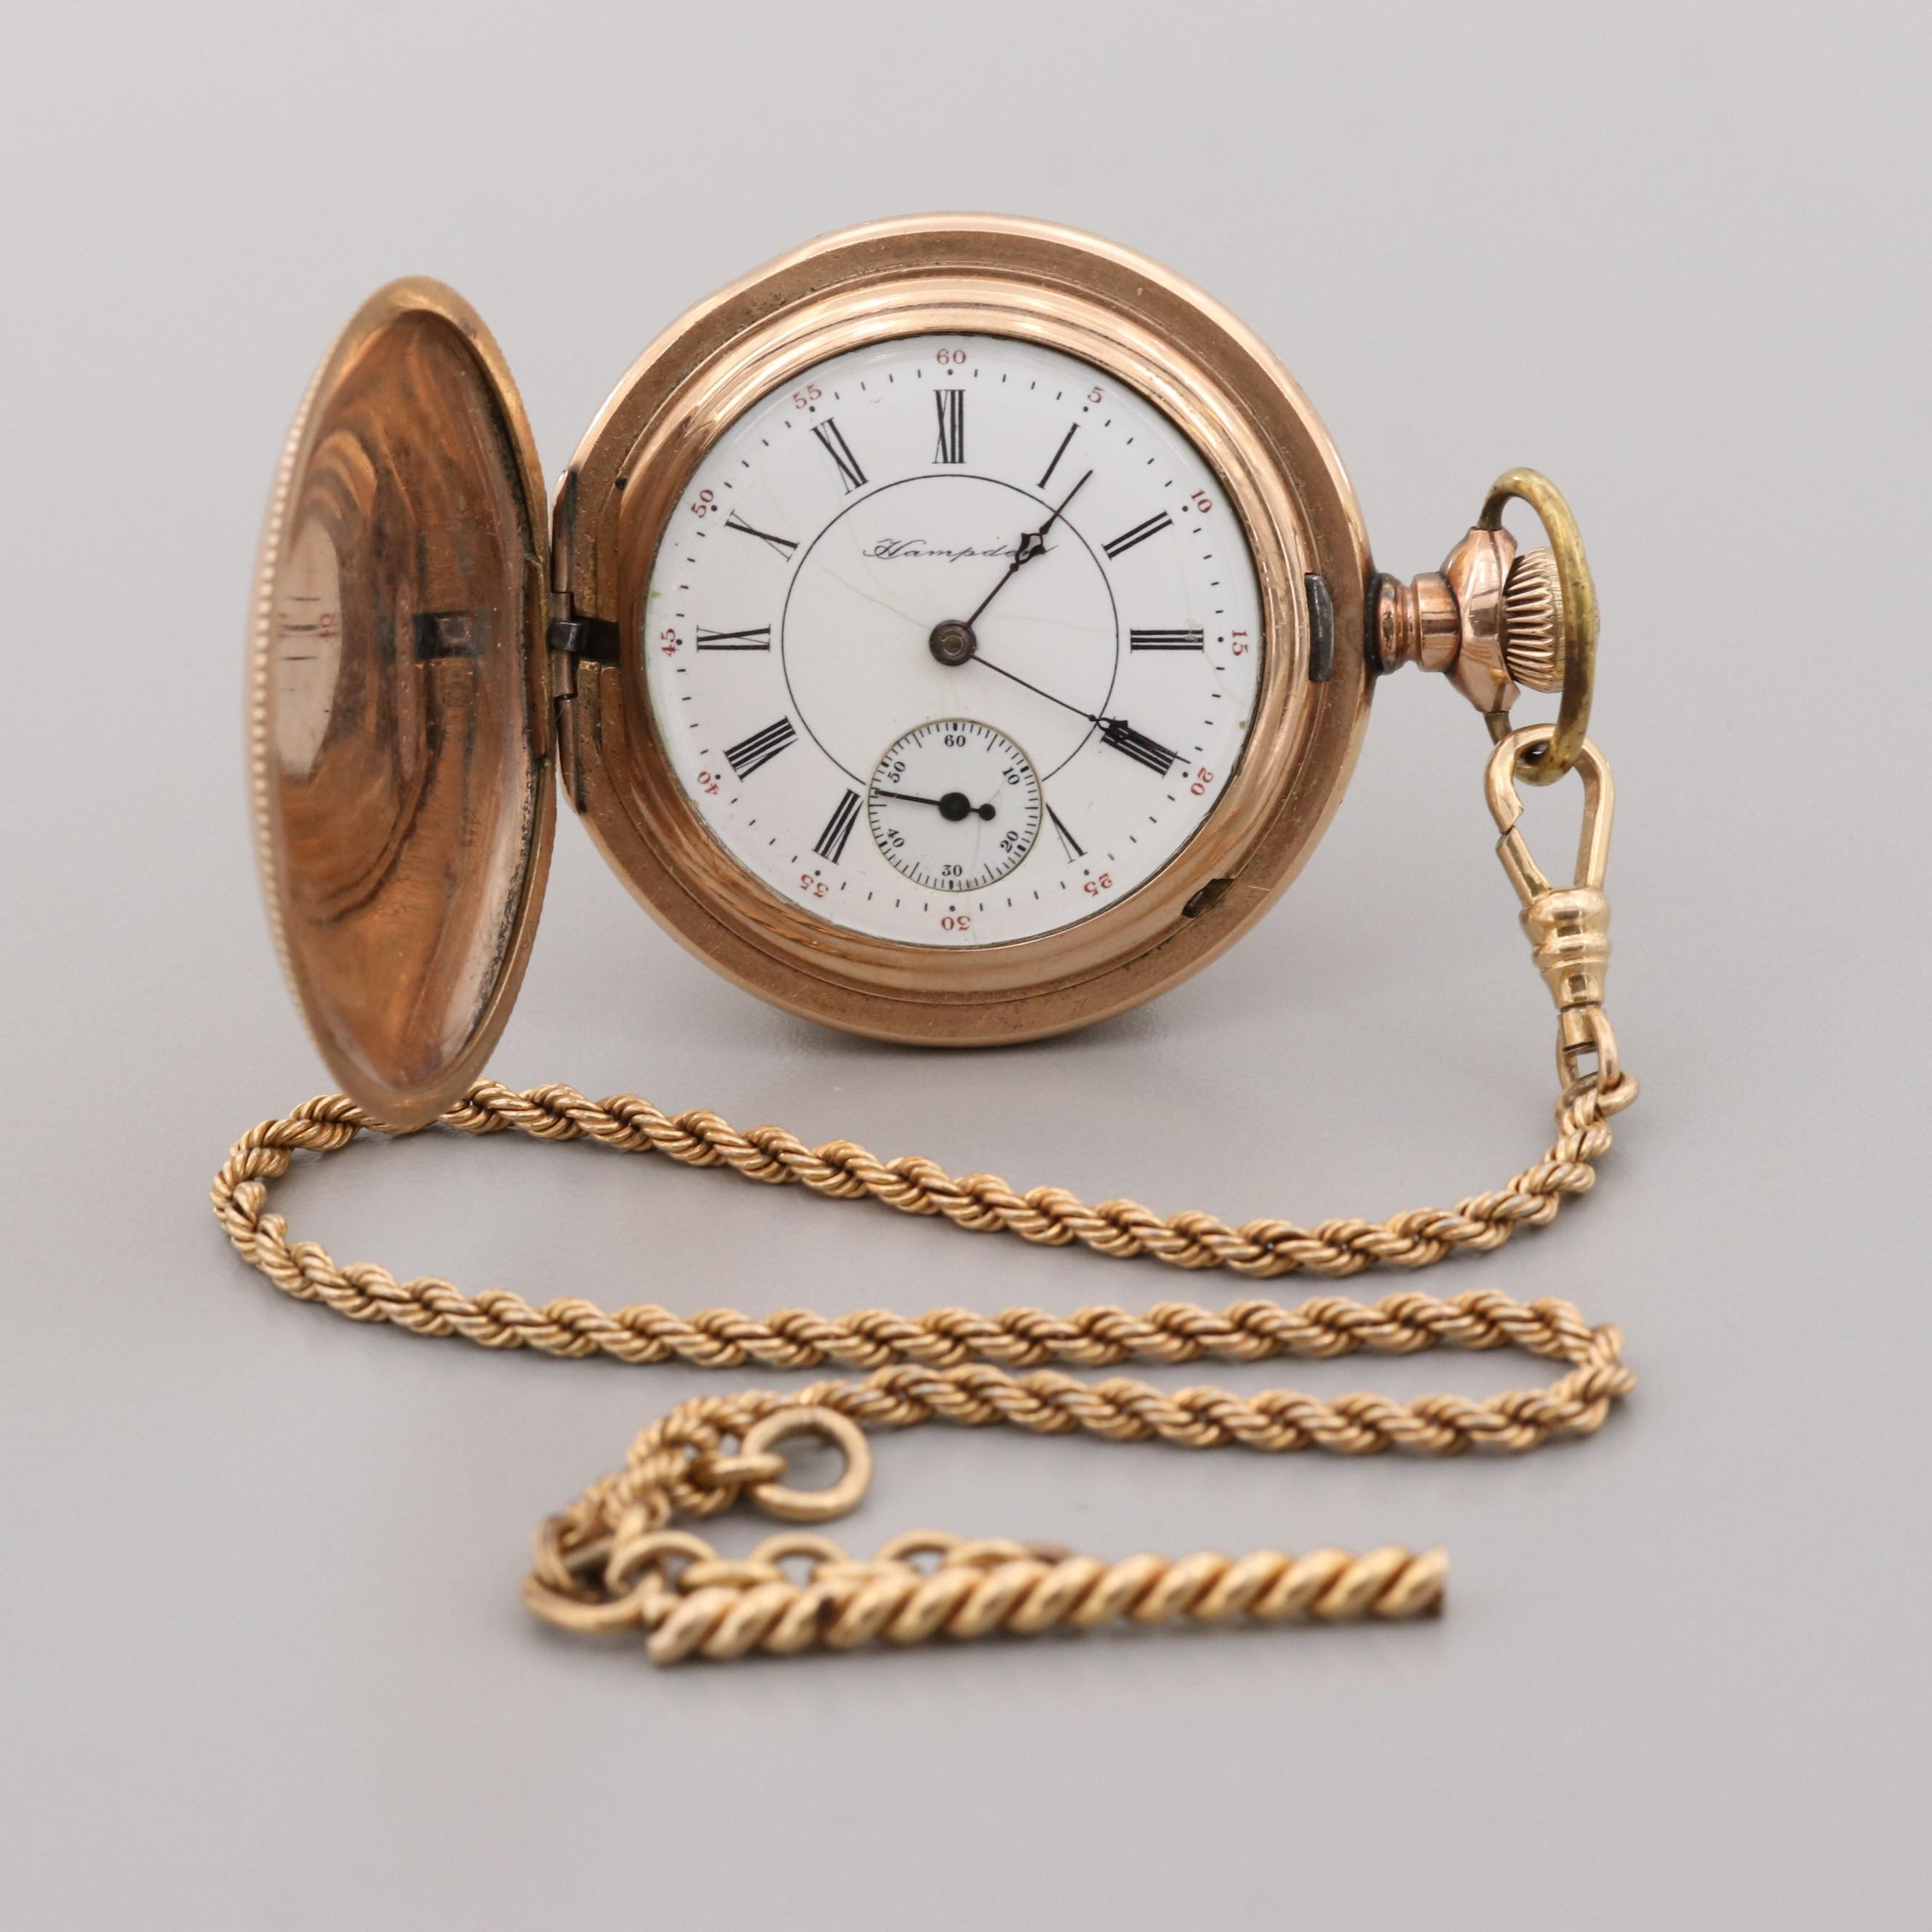 Hampden Gold Filled Pocket Watch and Fob Chain, 1901